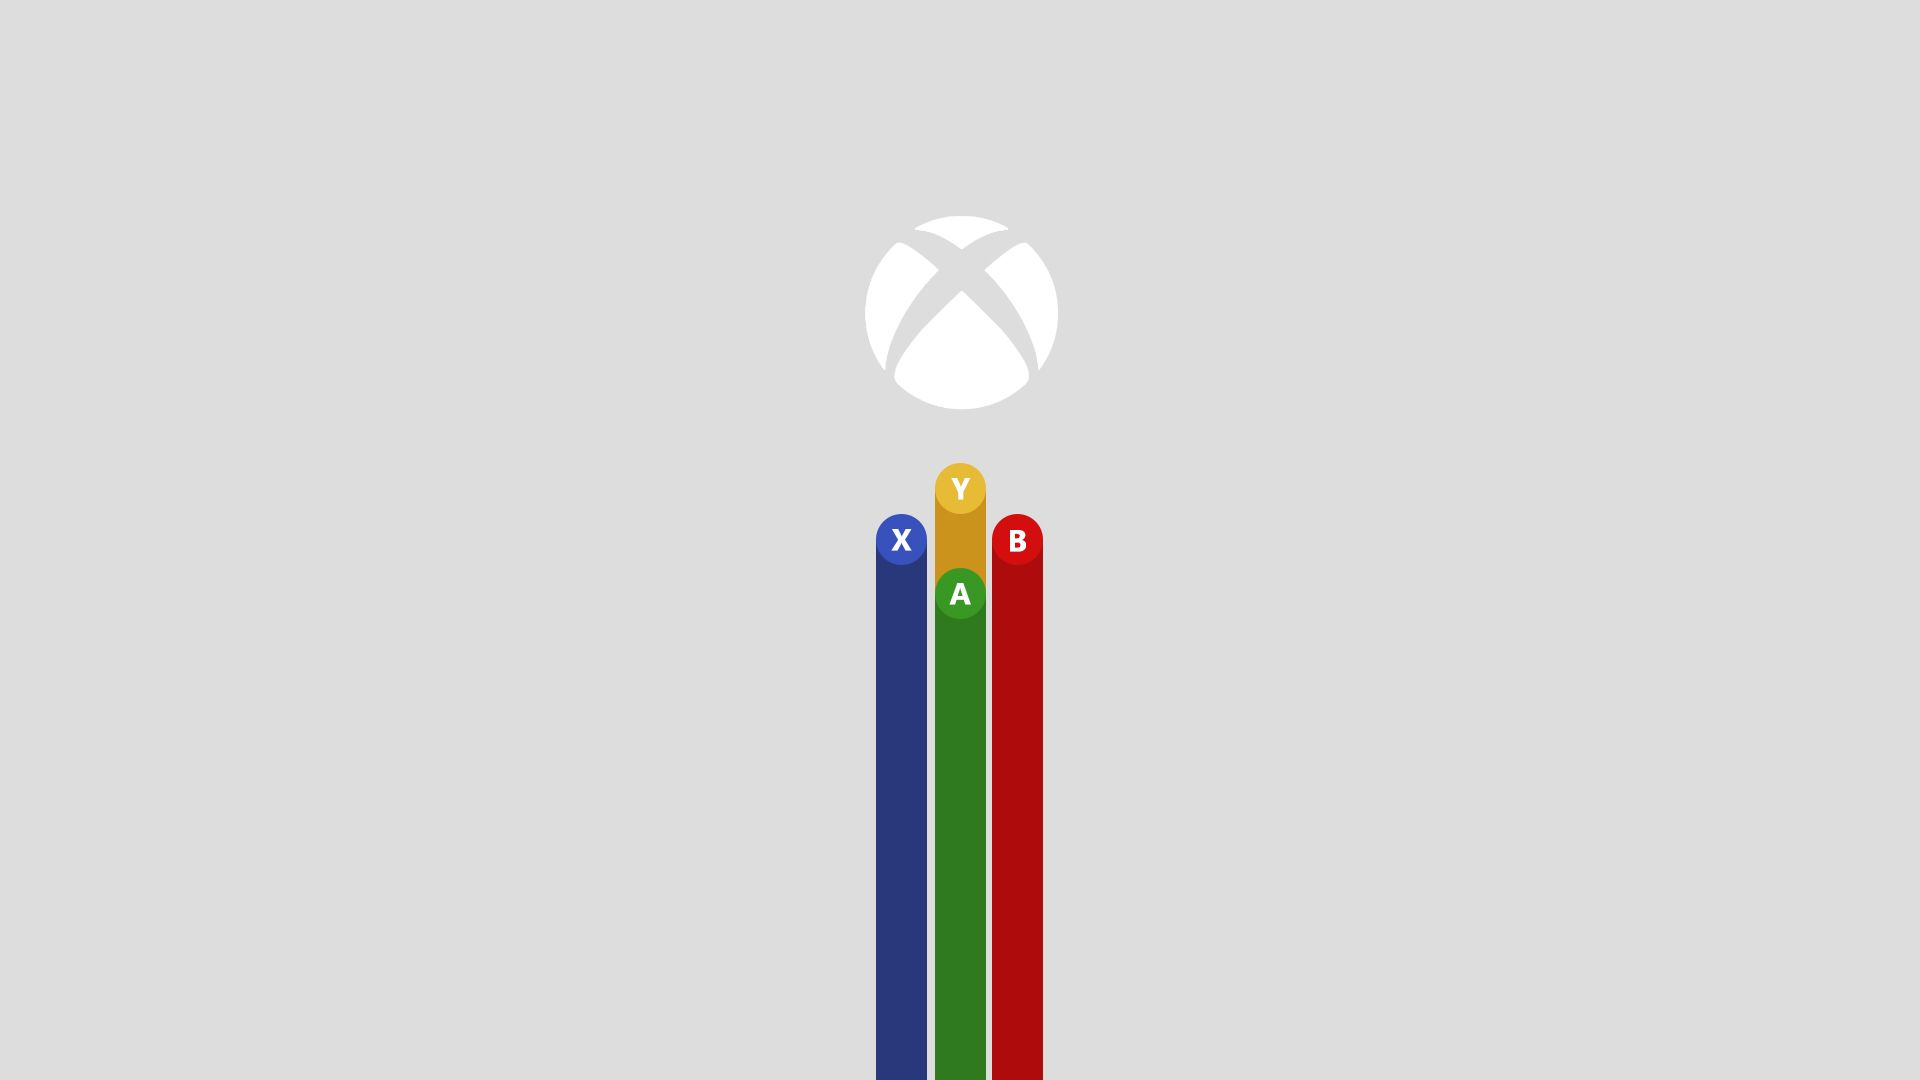 Cool Xbox Wallpapers For Phone